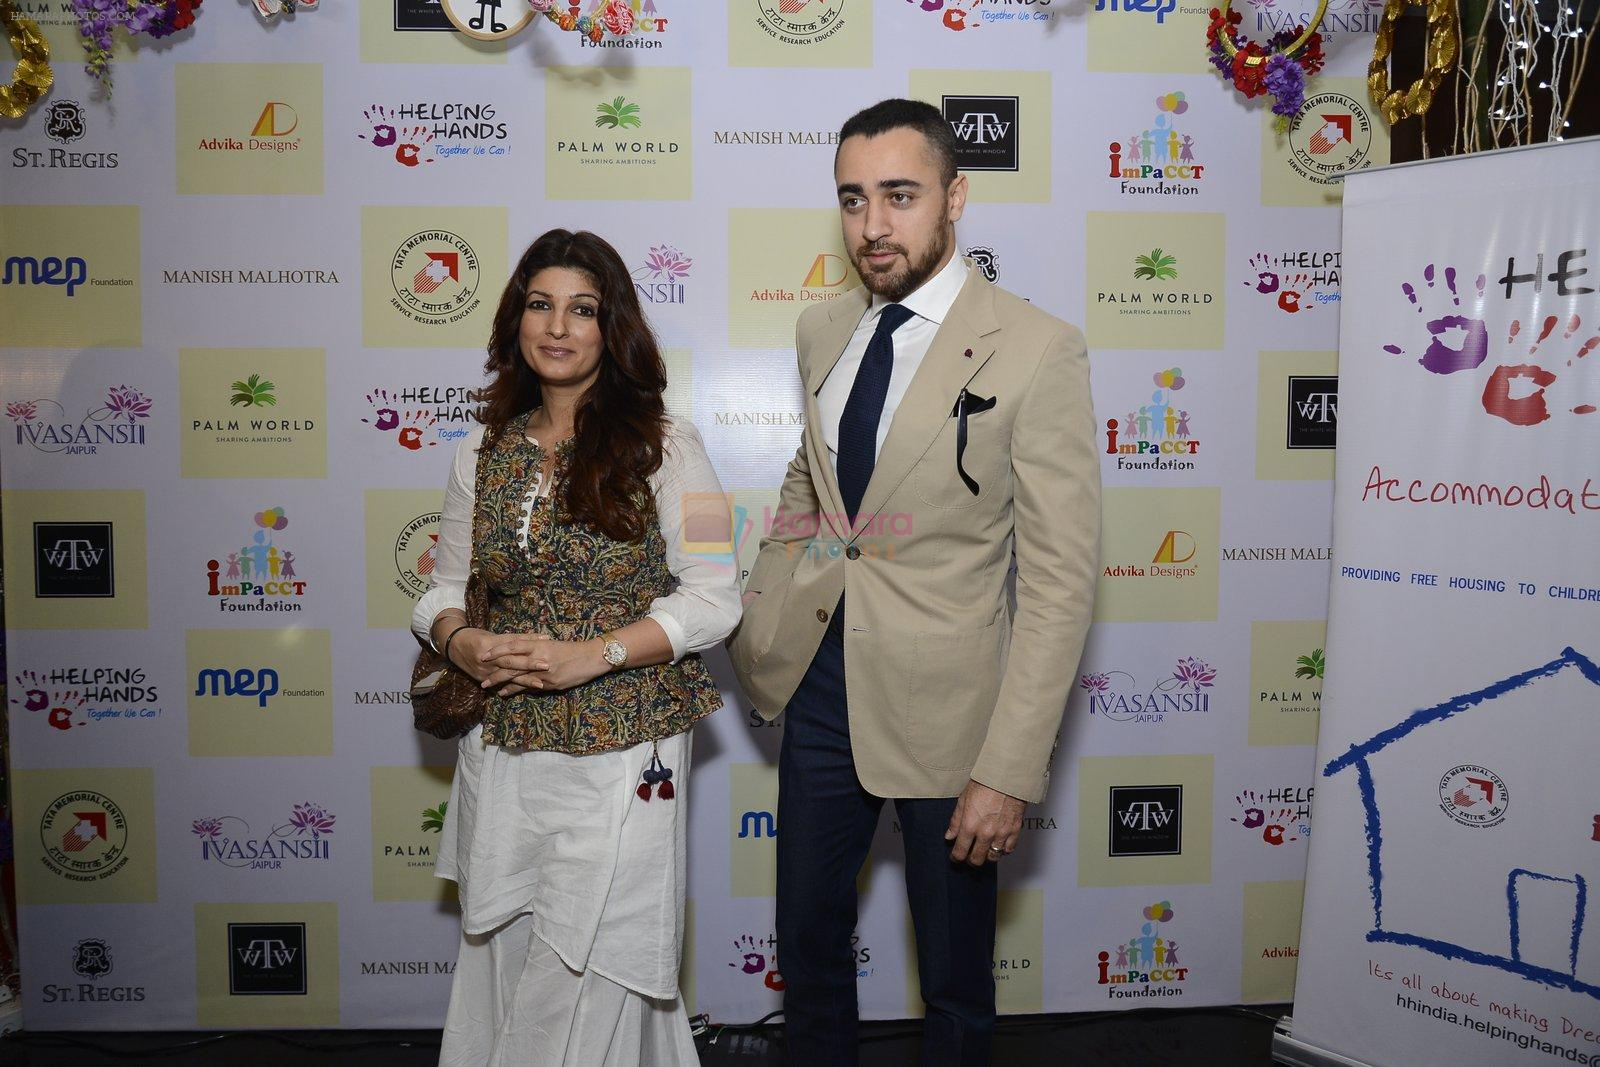 Twinkle khanna and Imran khan inaugurate helping hands exhibition in st regis on 13th Oct 2016